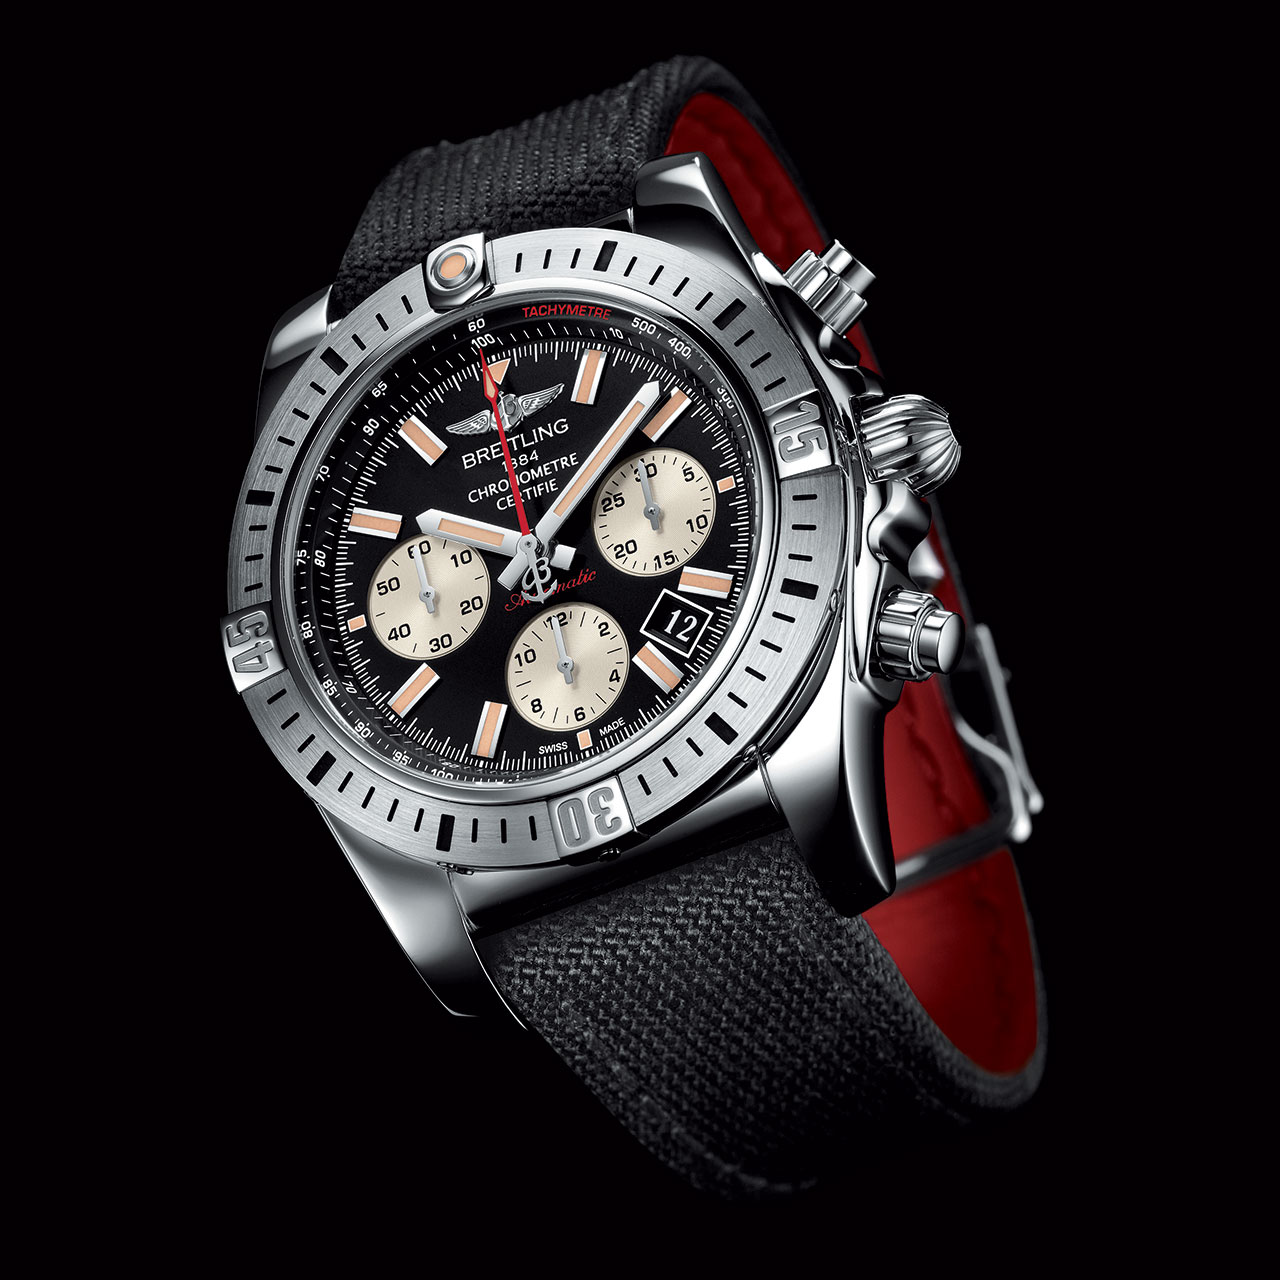 Breitling Chronomat 44 Airborne Automatic Watch